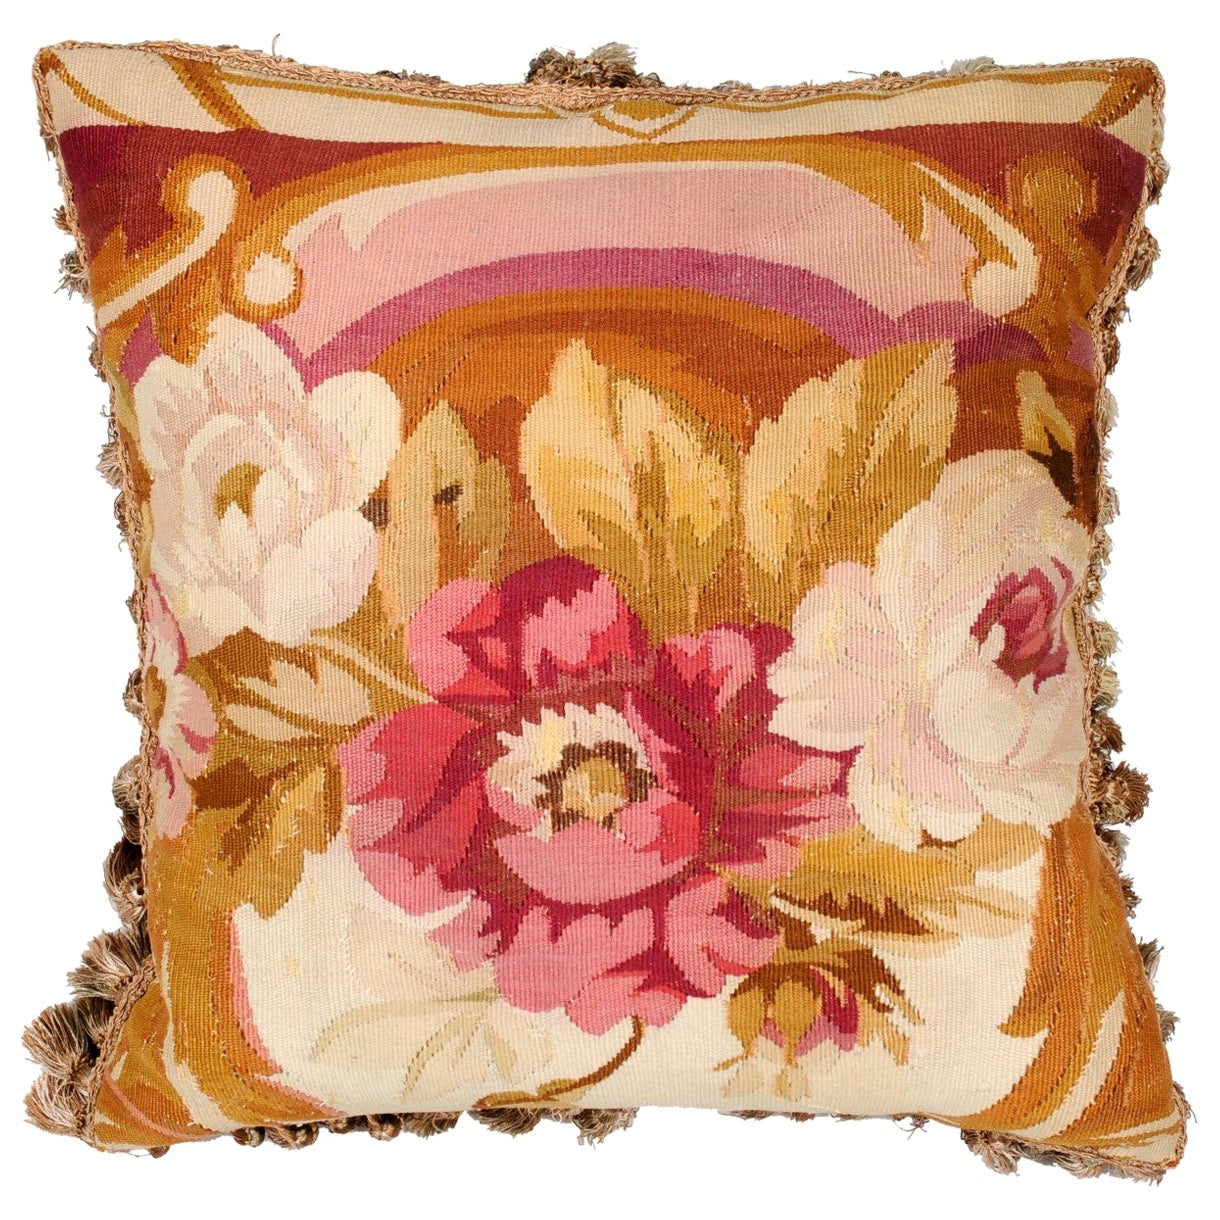 French 19th Century Aubusson Woven Tapestry Pillow with Roses Decor and Tassels